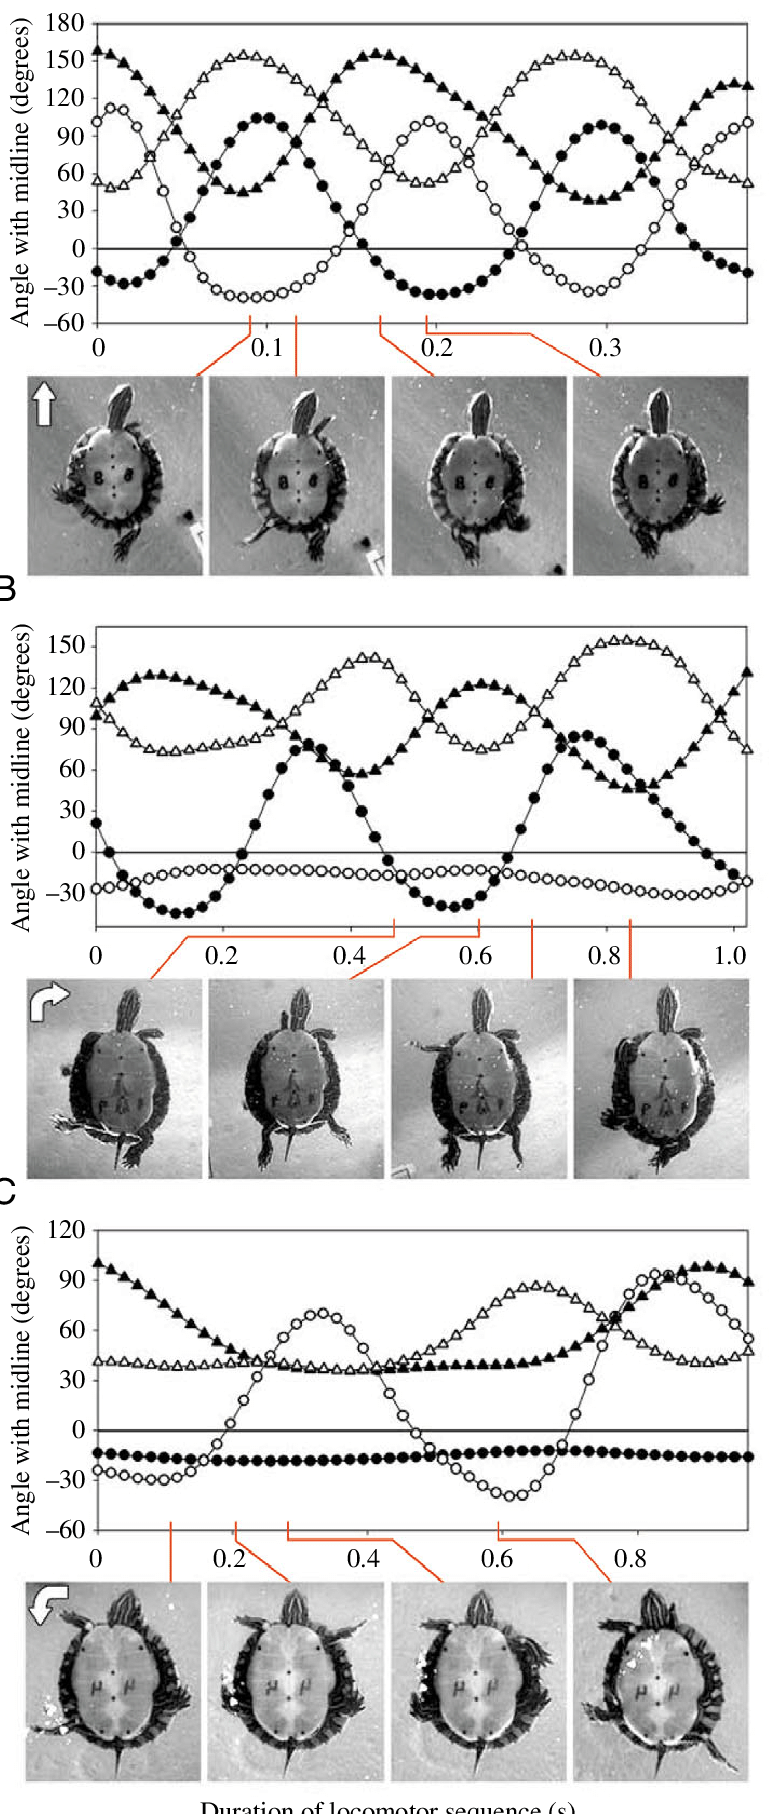 medium resolution of representative kinematic profiles for three modes of swimming performed by painted turtles with still images